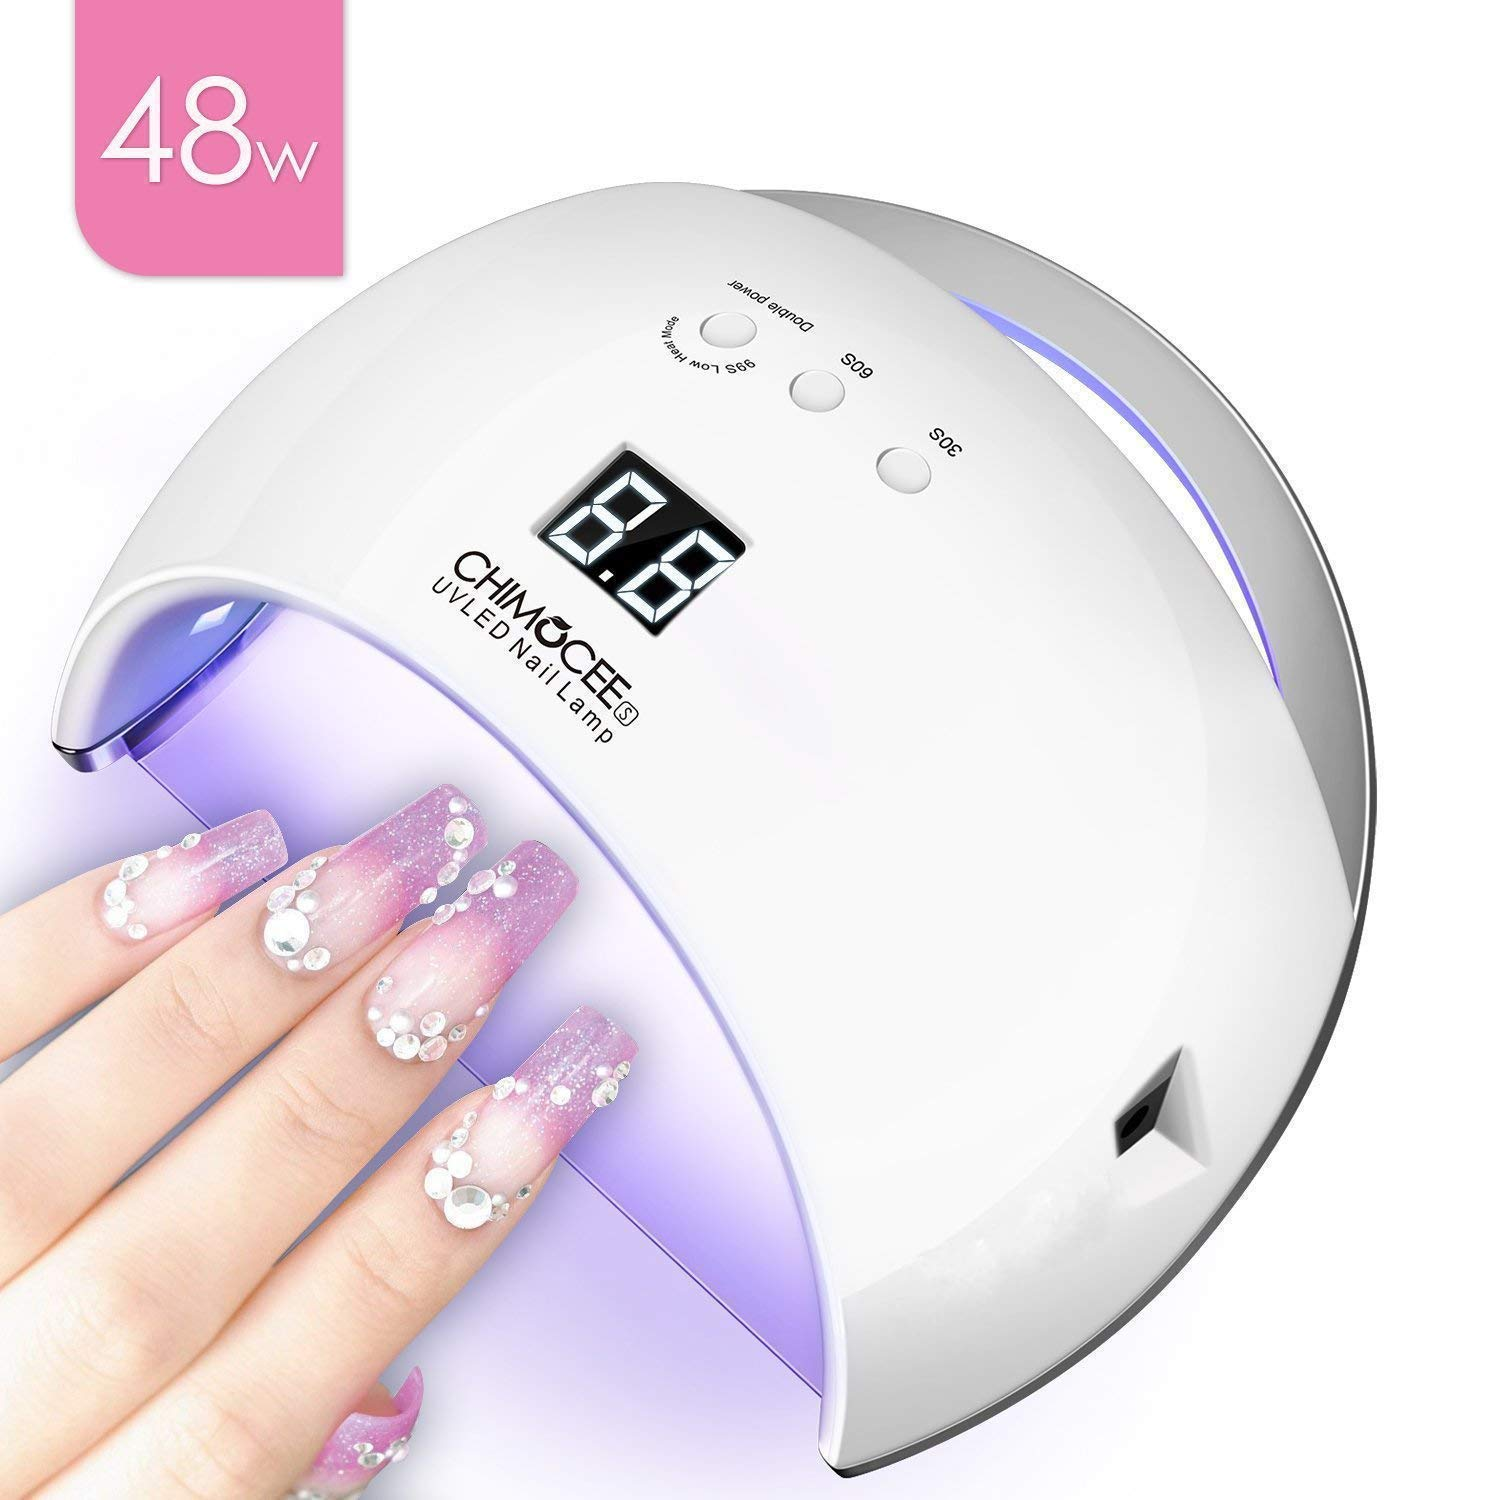 48W UV Led Nail Dryer, CHIMOCEE Smart Curing Lamp, Auto Sensor Nail Gel Polish Dryer With 3 Timer Setting, Professional For All Brand Type (White) by CHIMOCEE